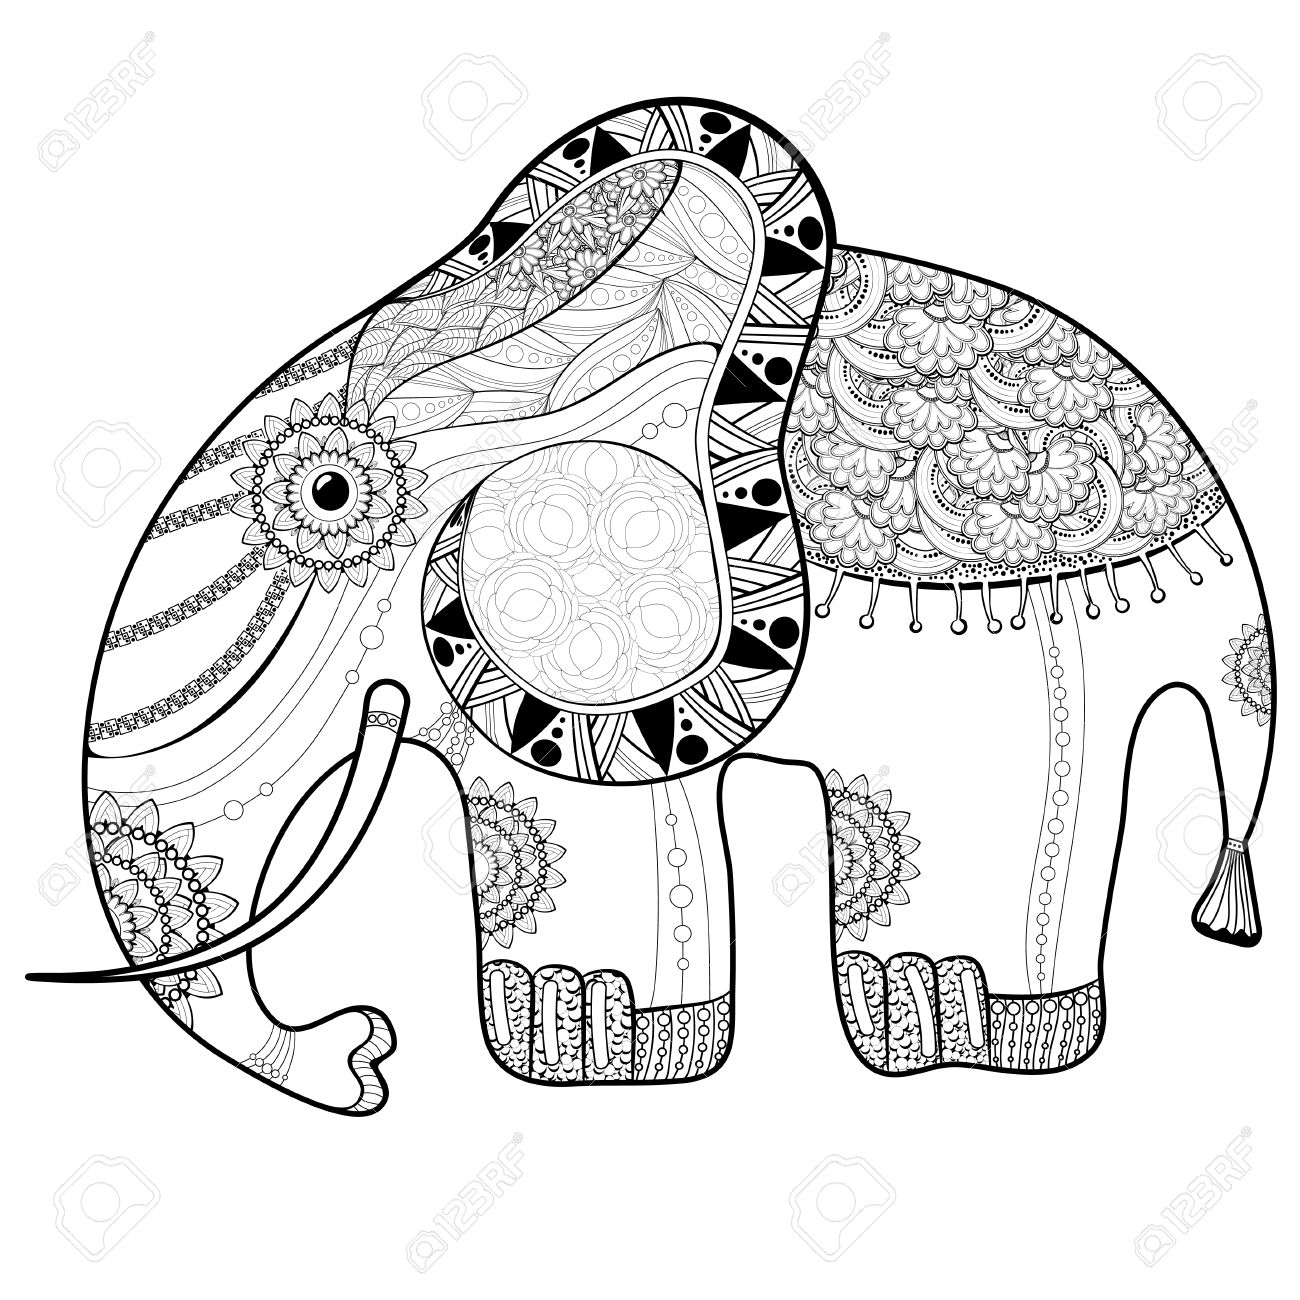 Coloring Book Page For Adults. Elephant. Ethnic Anti Stress Pattern ...